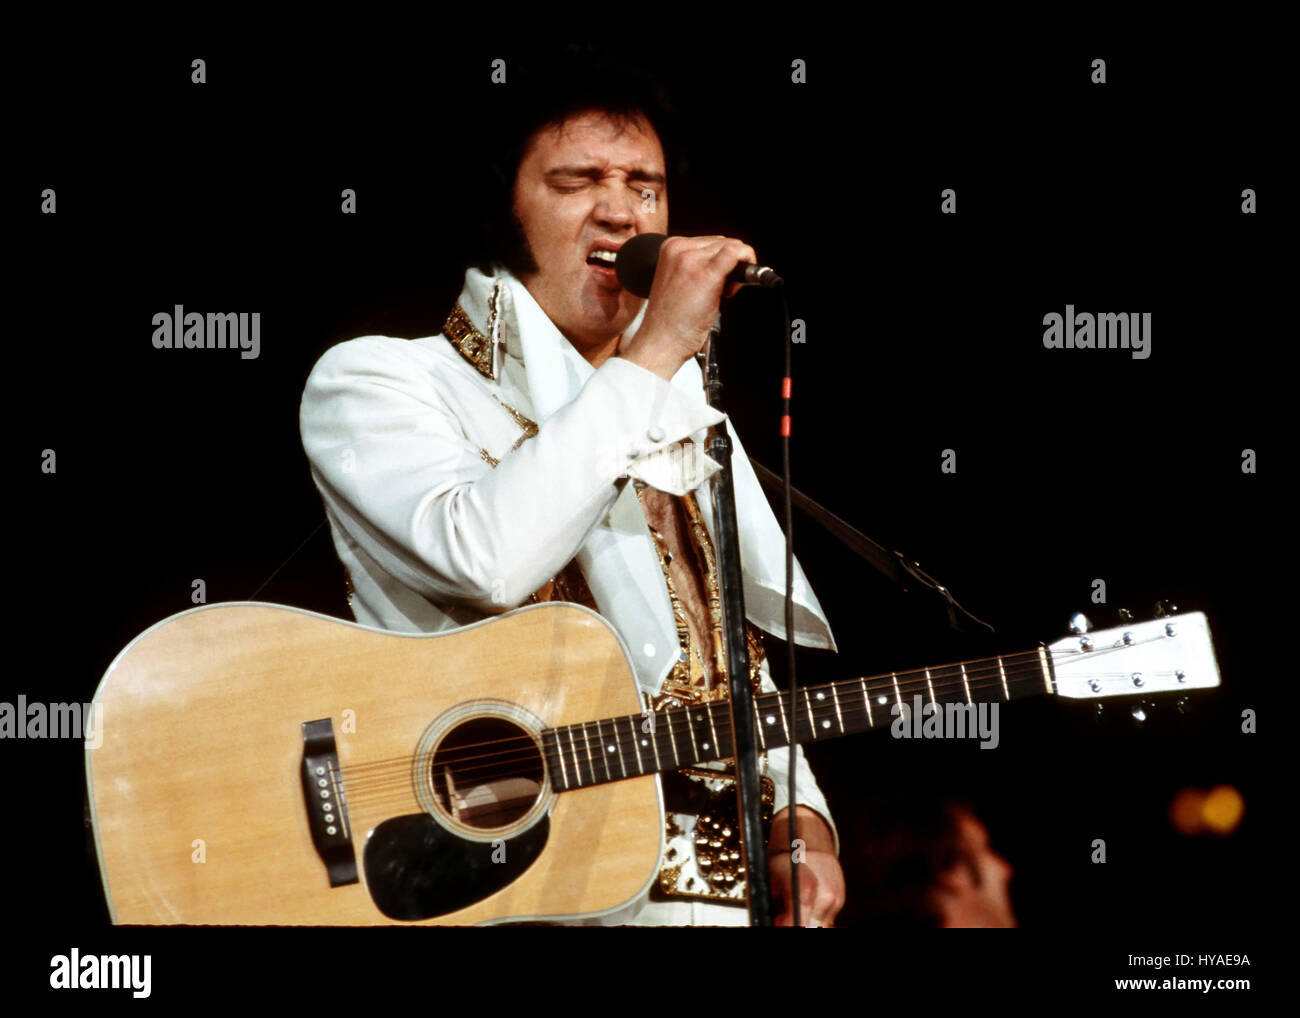 Elvis Presley 1977 High Resolution Stock Photography And Images Alamy